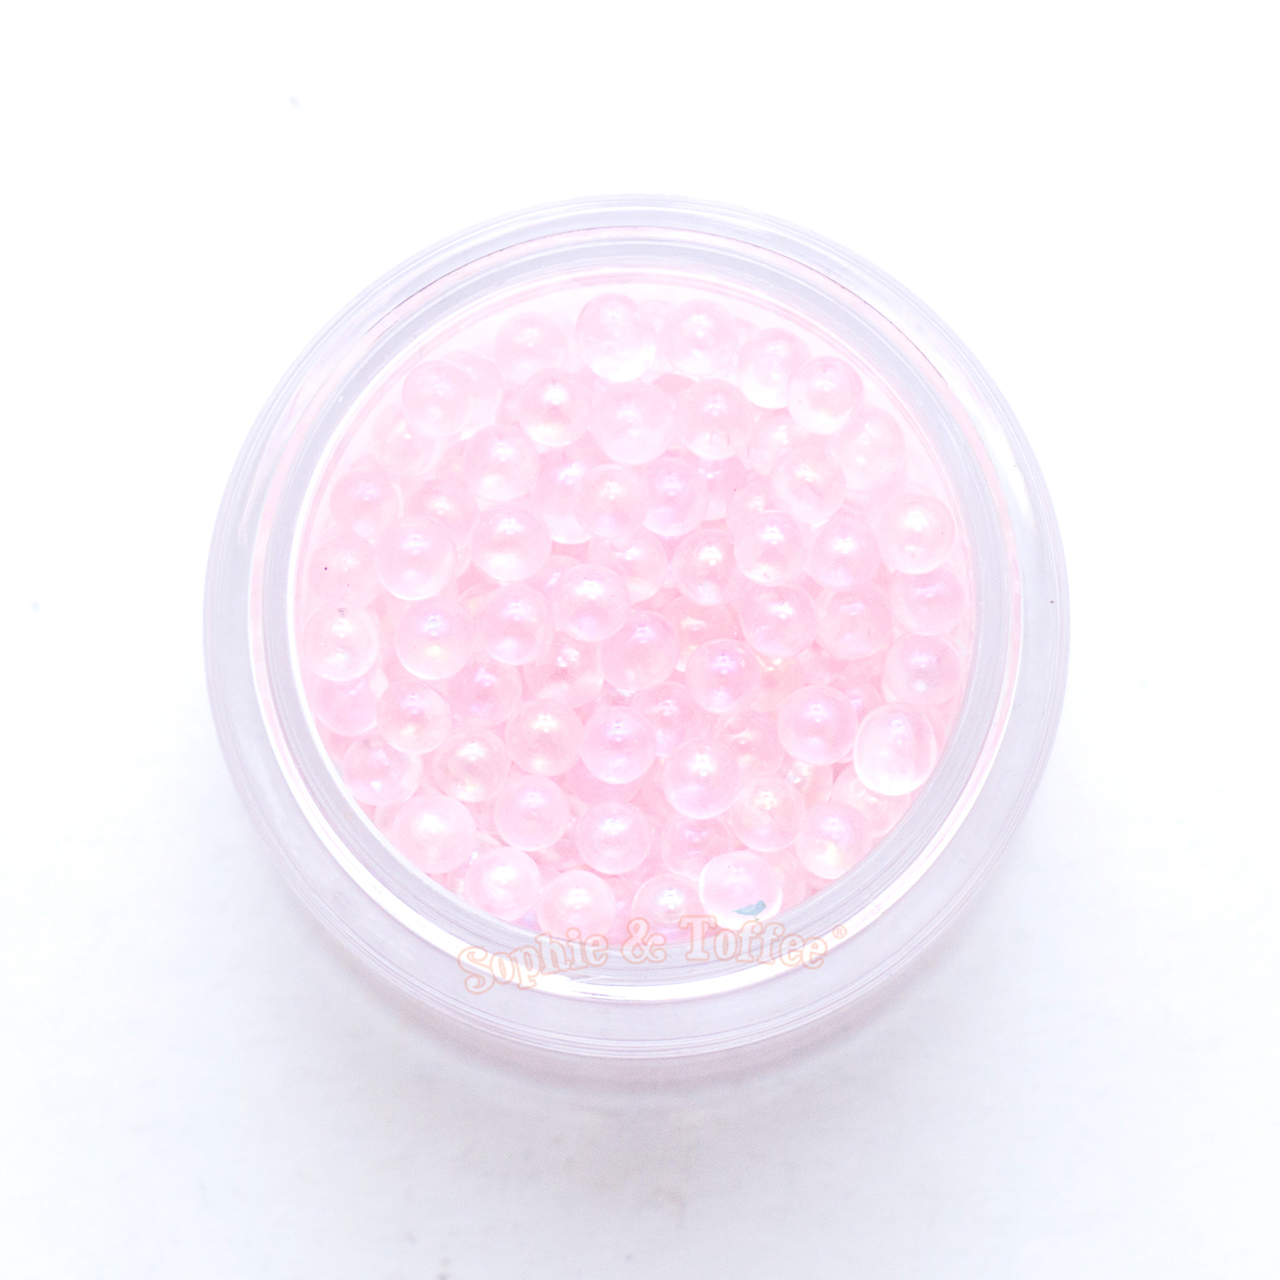 41f348ef911 Iridescent Water Bubbles Mermaid Beads   Water Bubble Beads in AB ...